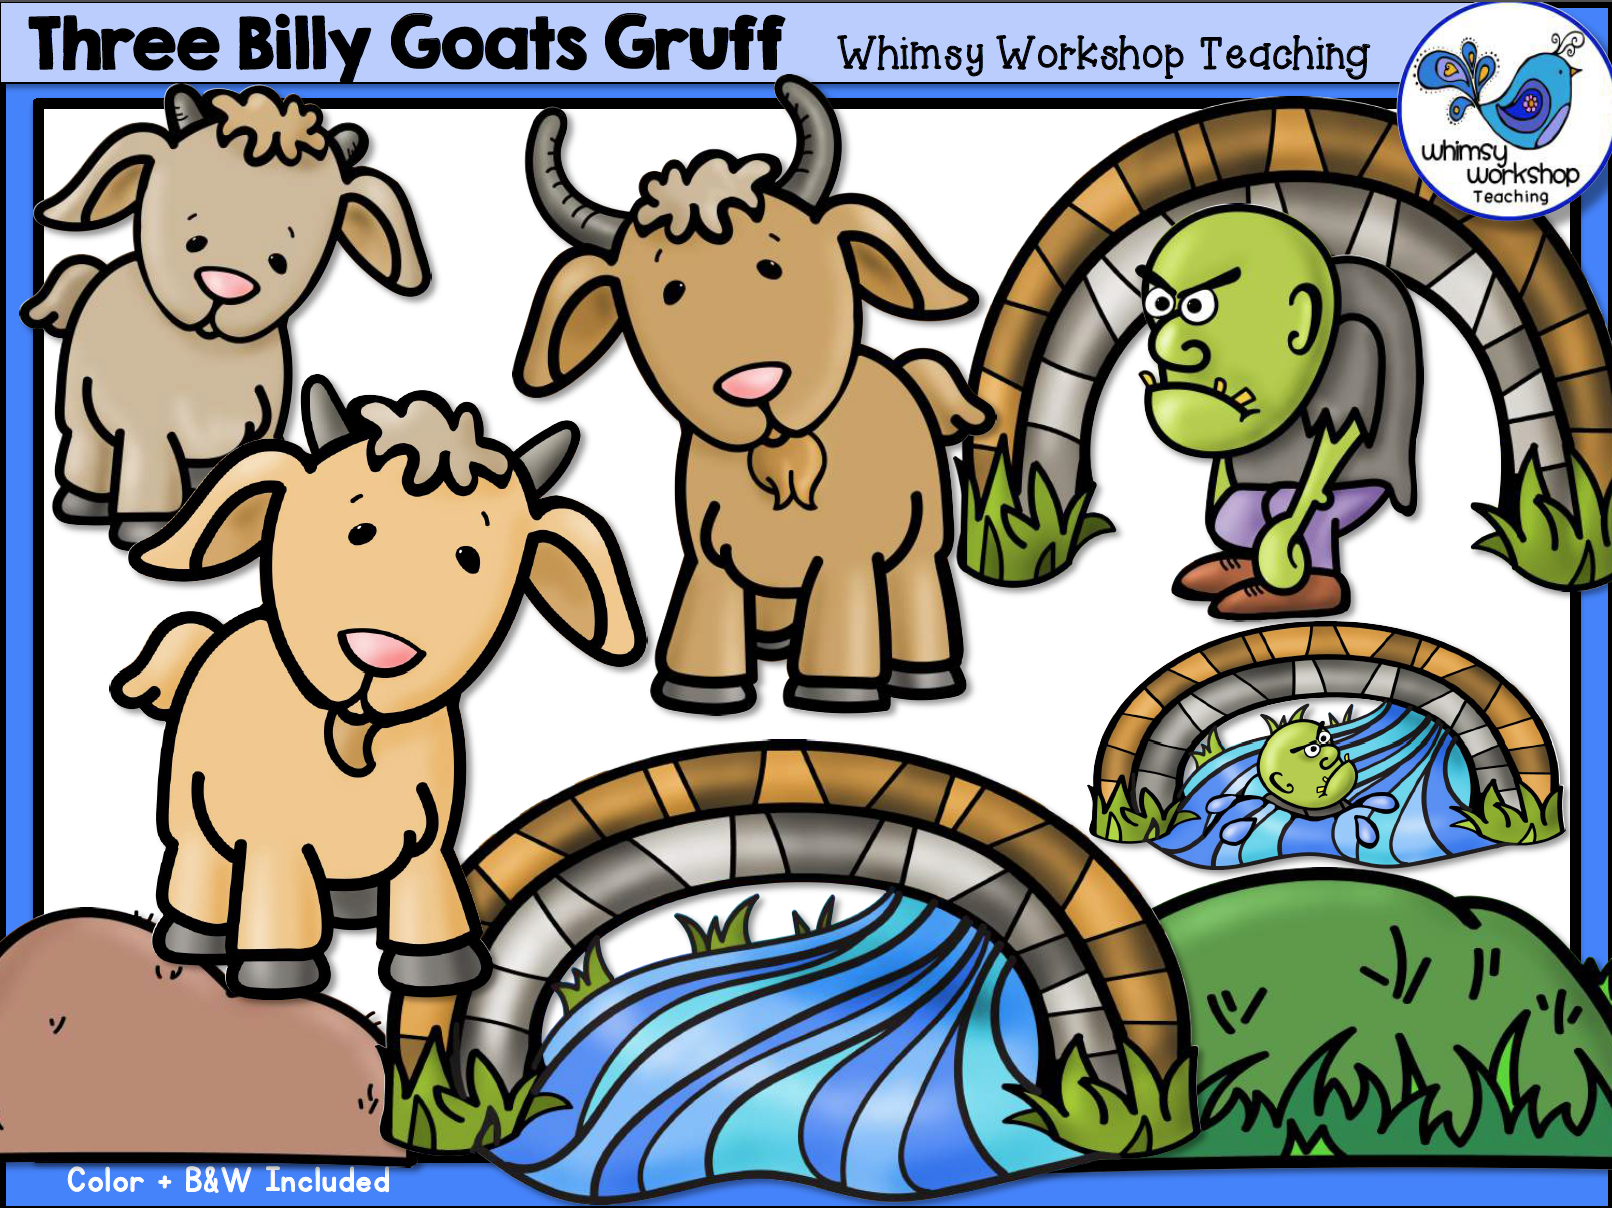 Billy goats gruff clipart images vector freeuse Three Billy Goats Gruff Clip Art | Down On the Farm | Billy goats ... vector freeuse